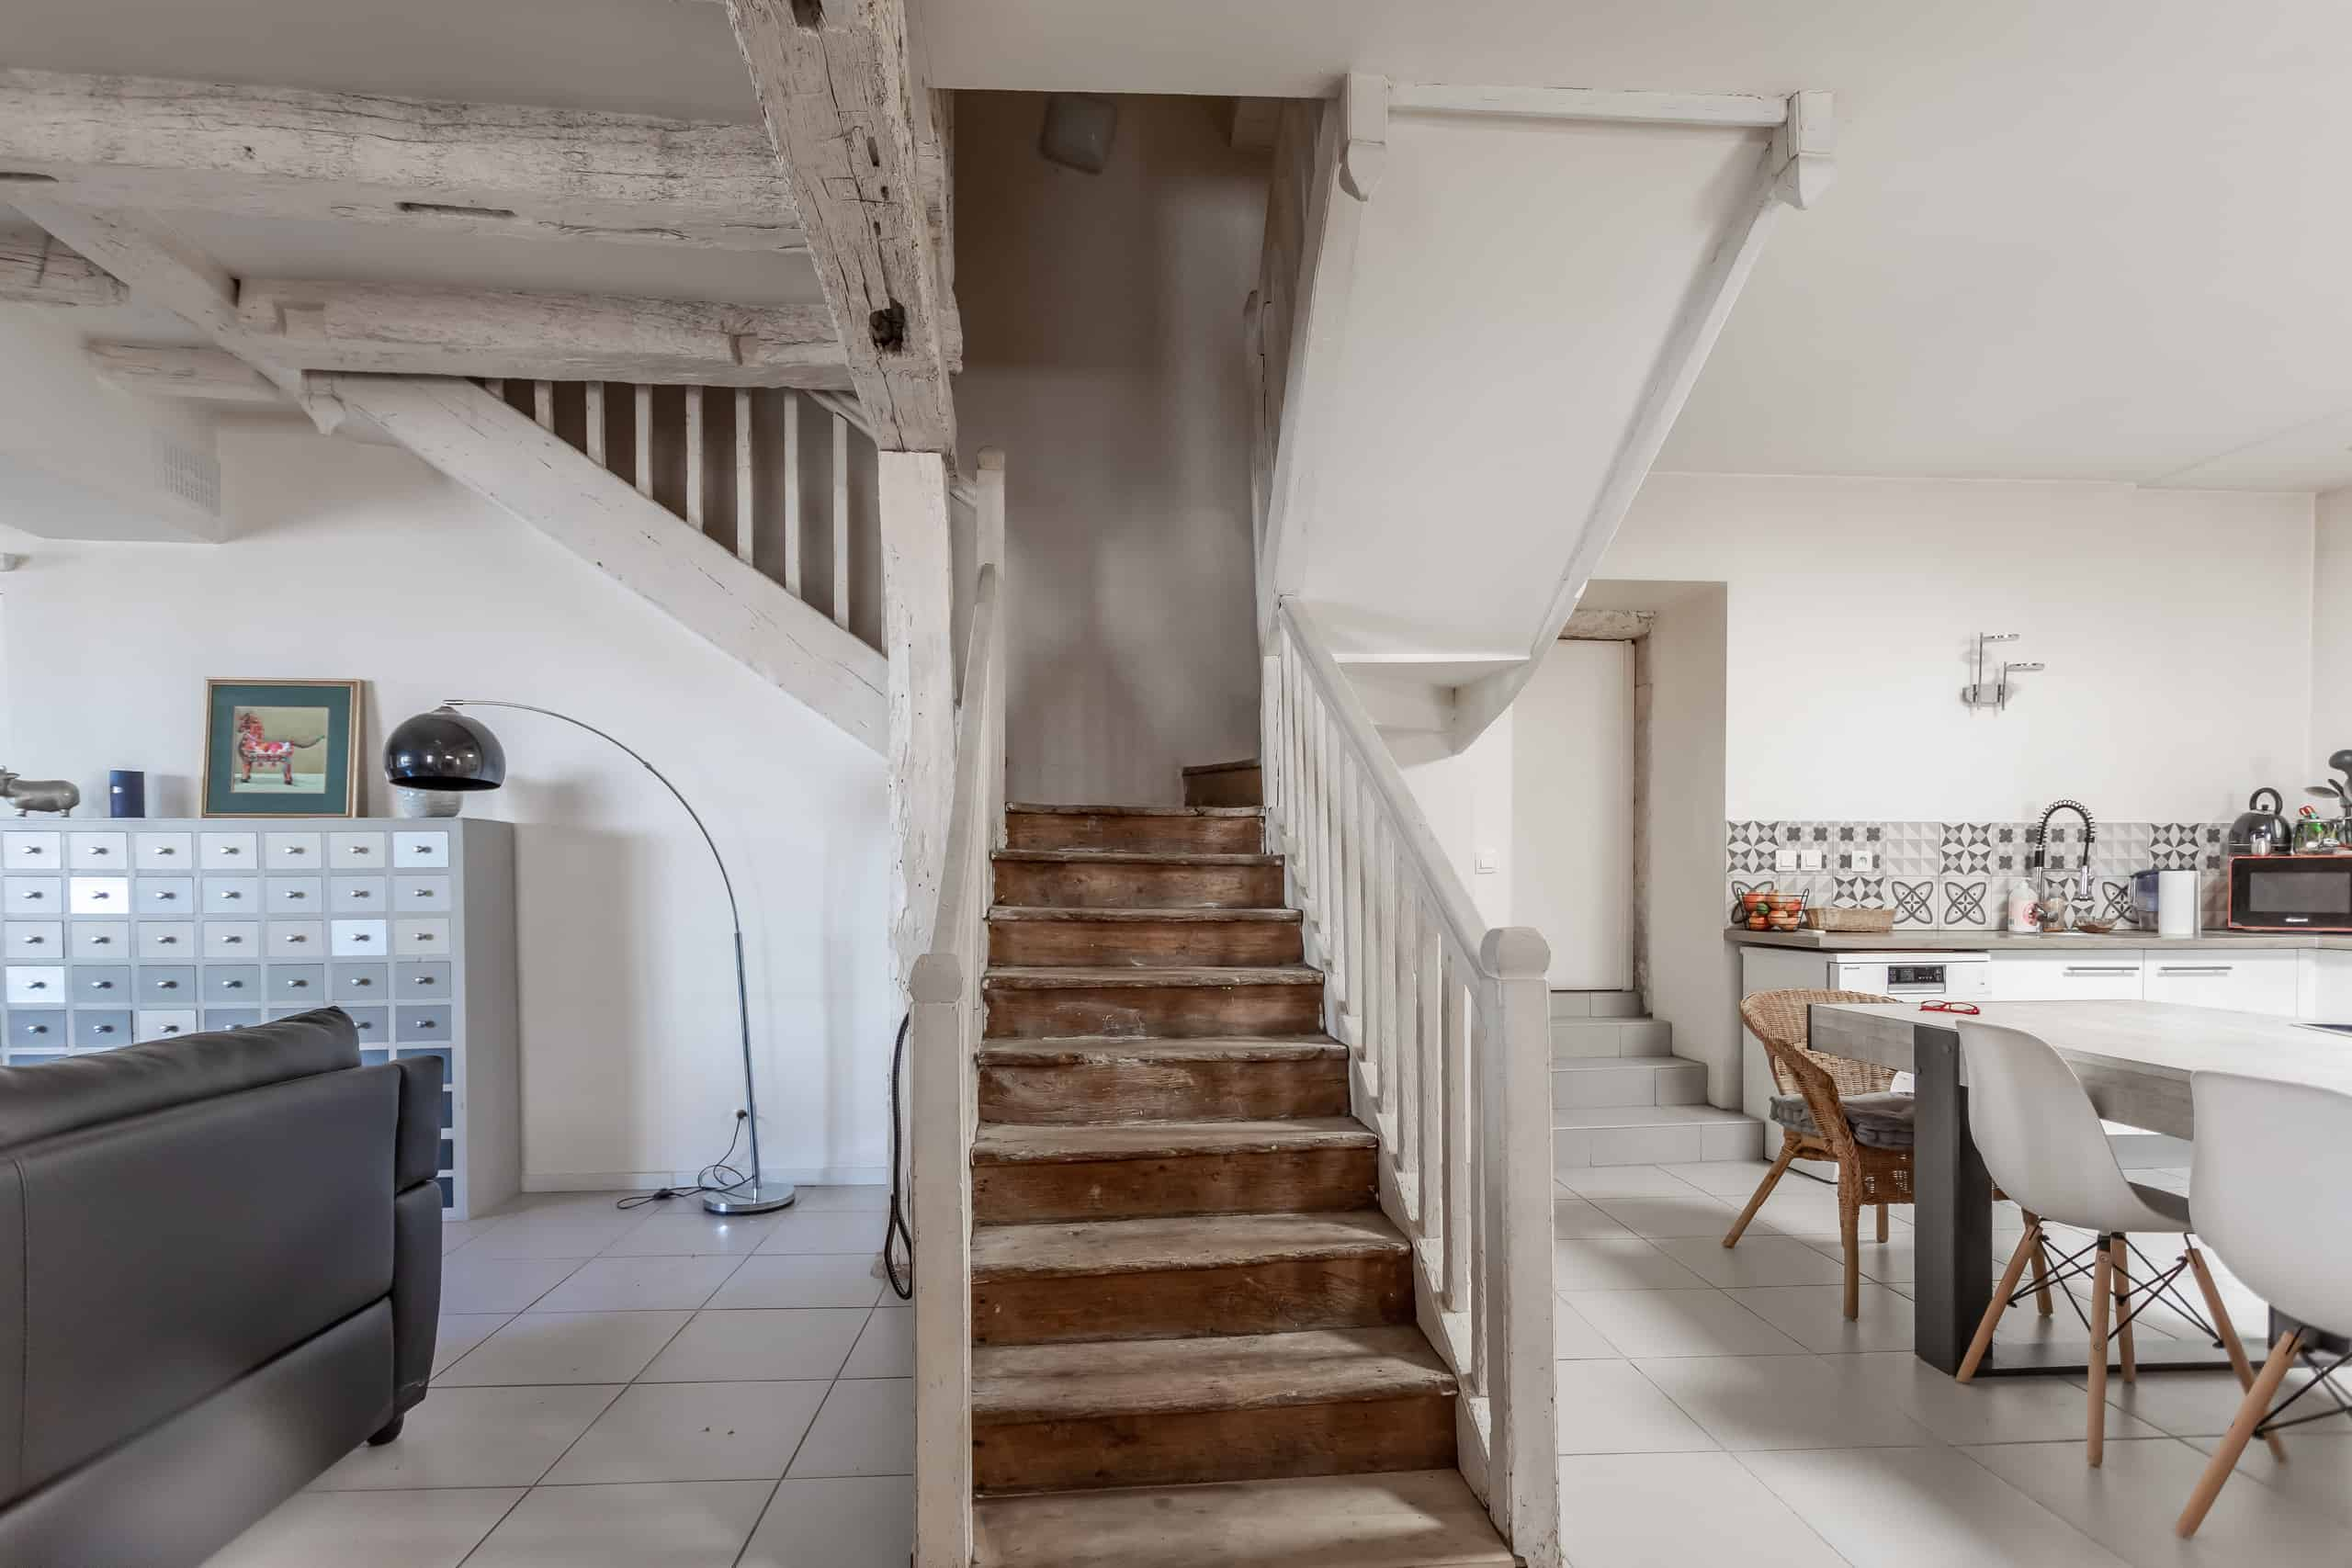 Staircase-2-47013